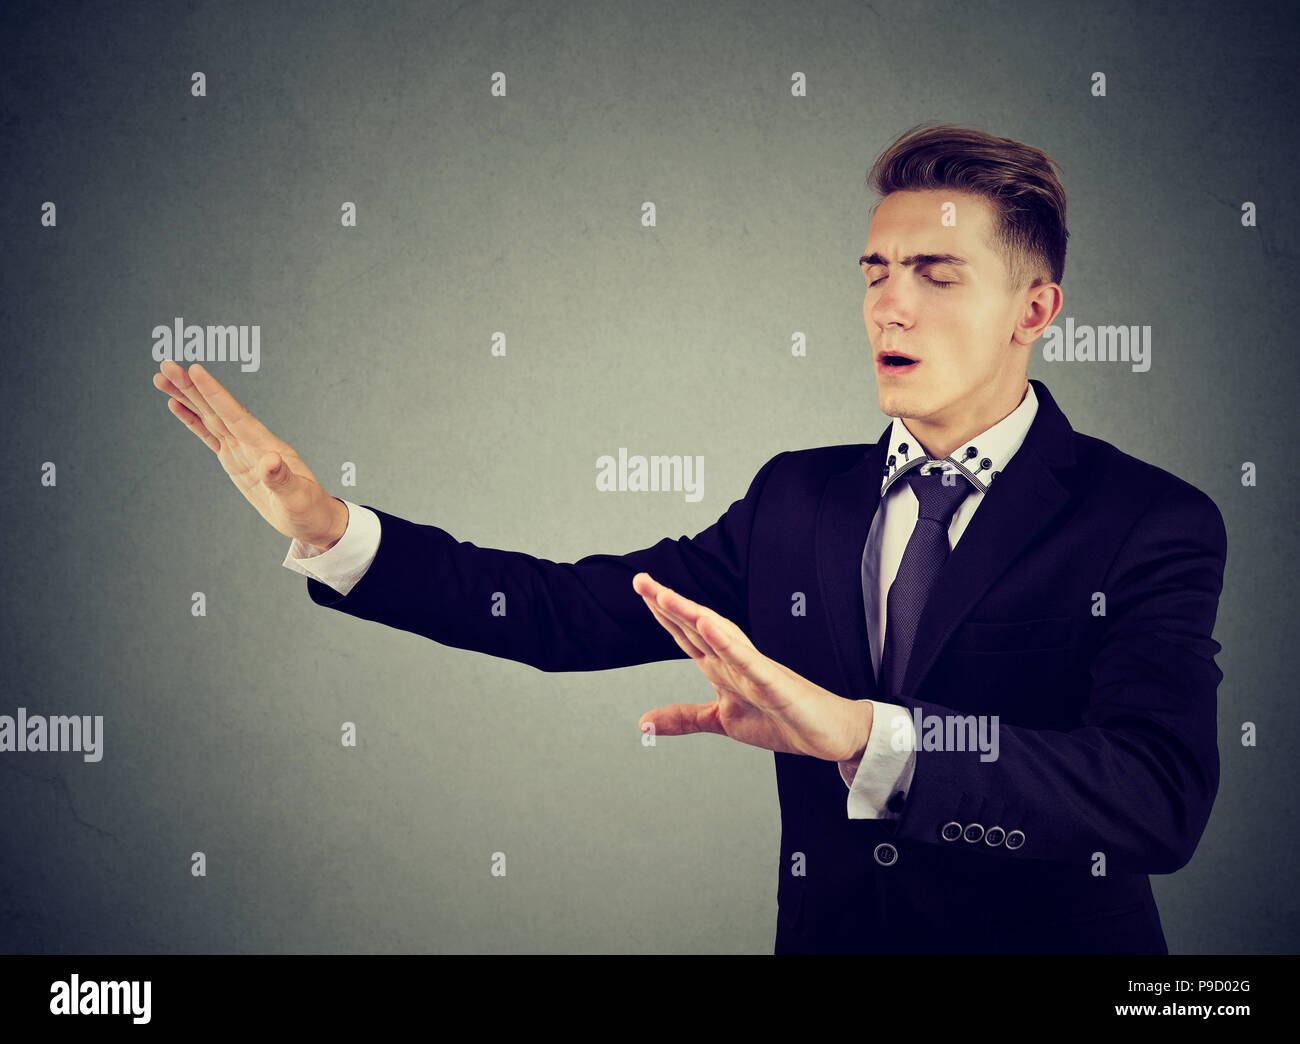 Young blindfolded man in elegant suit outstretching hands and searching in darkness on gray background - Stock Image